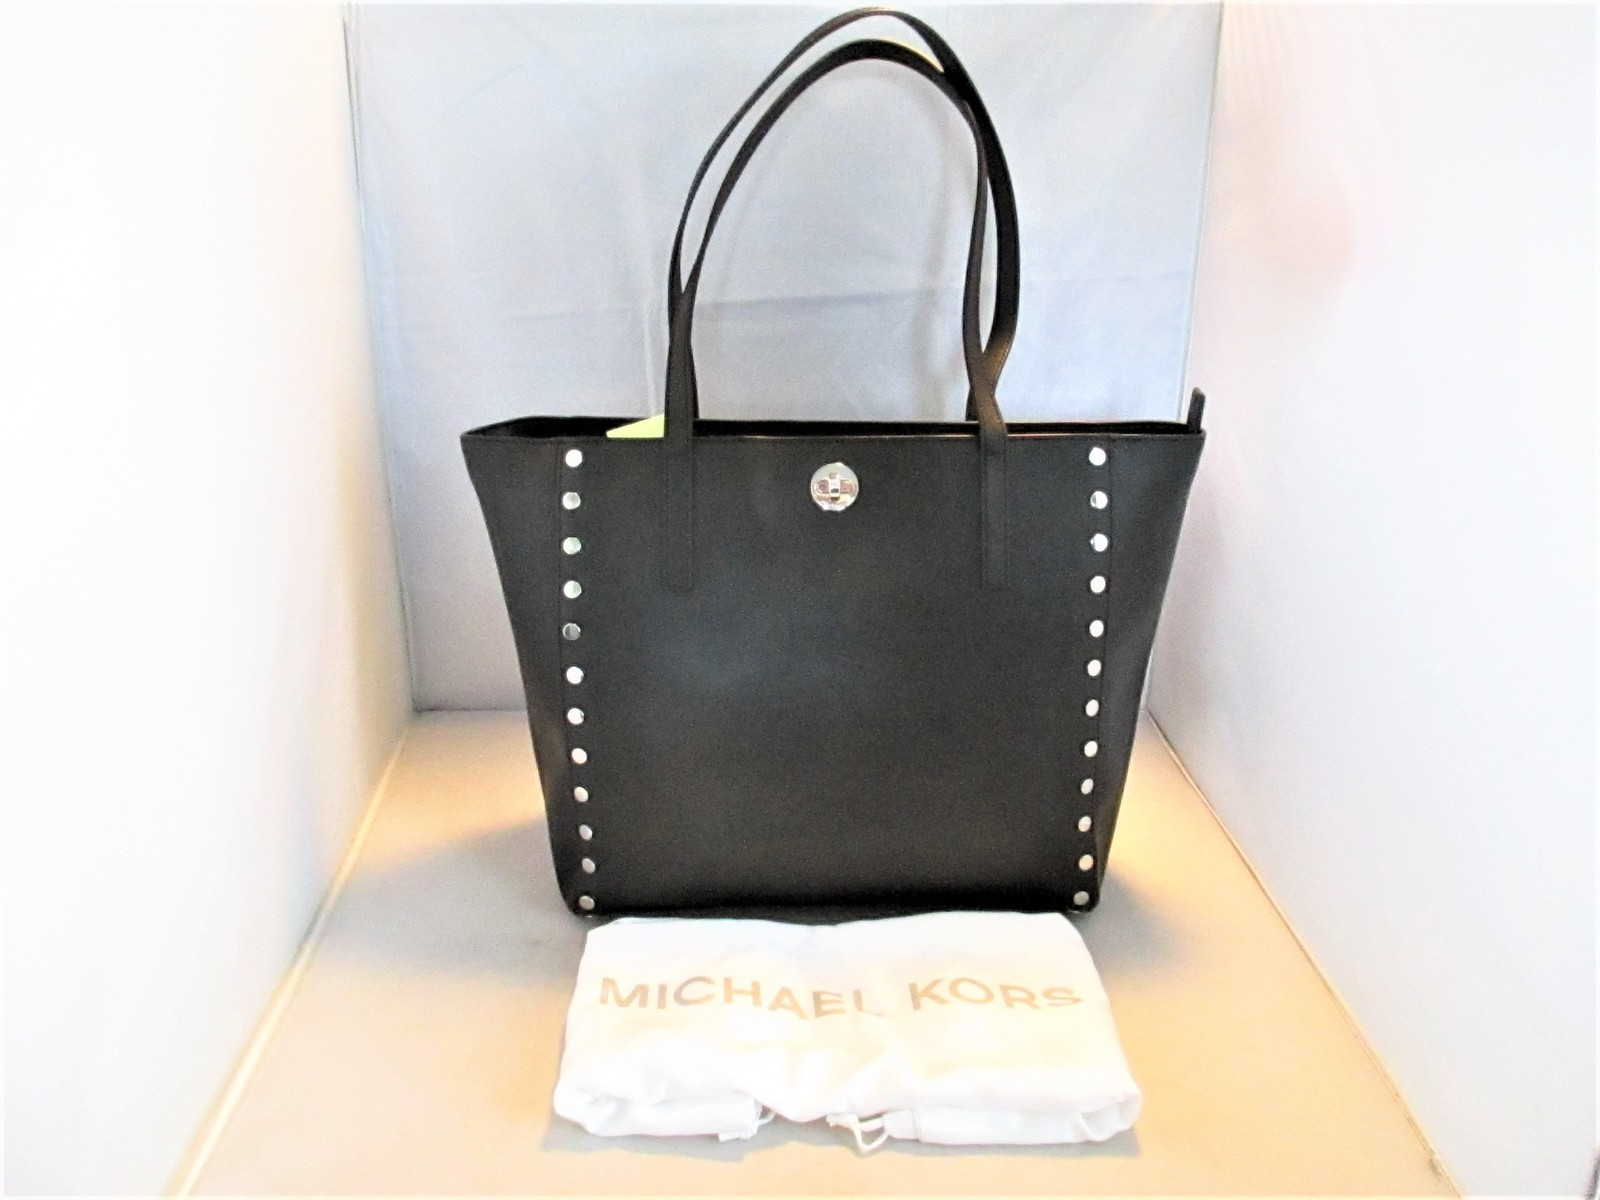 53530c49dc2d Michael Kors Handbag Rivington Stud Large and 50 similar items. Img 5442